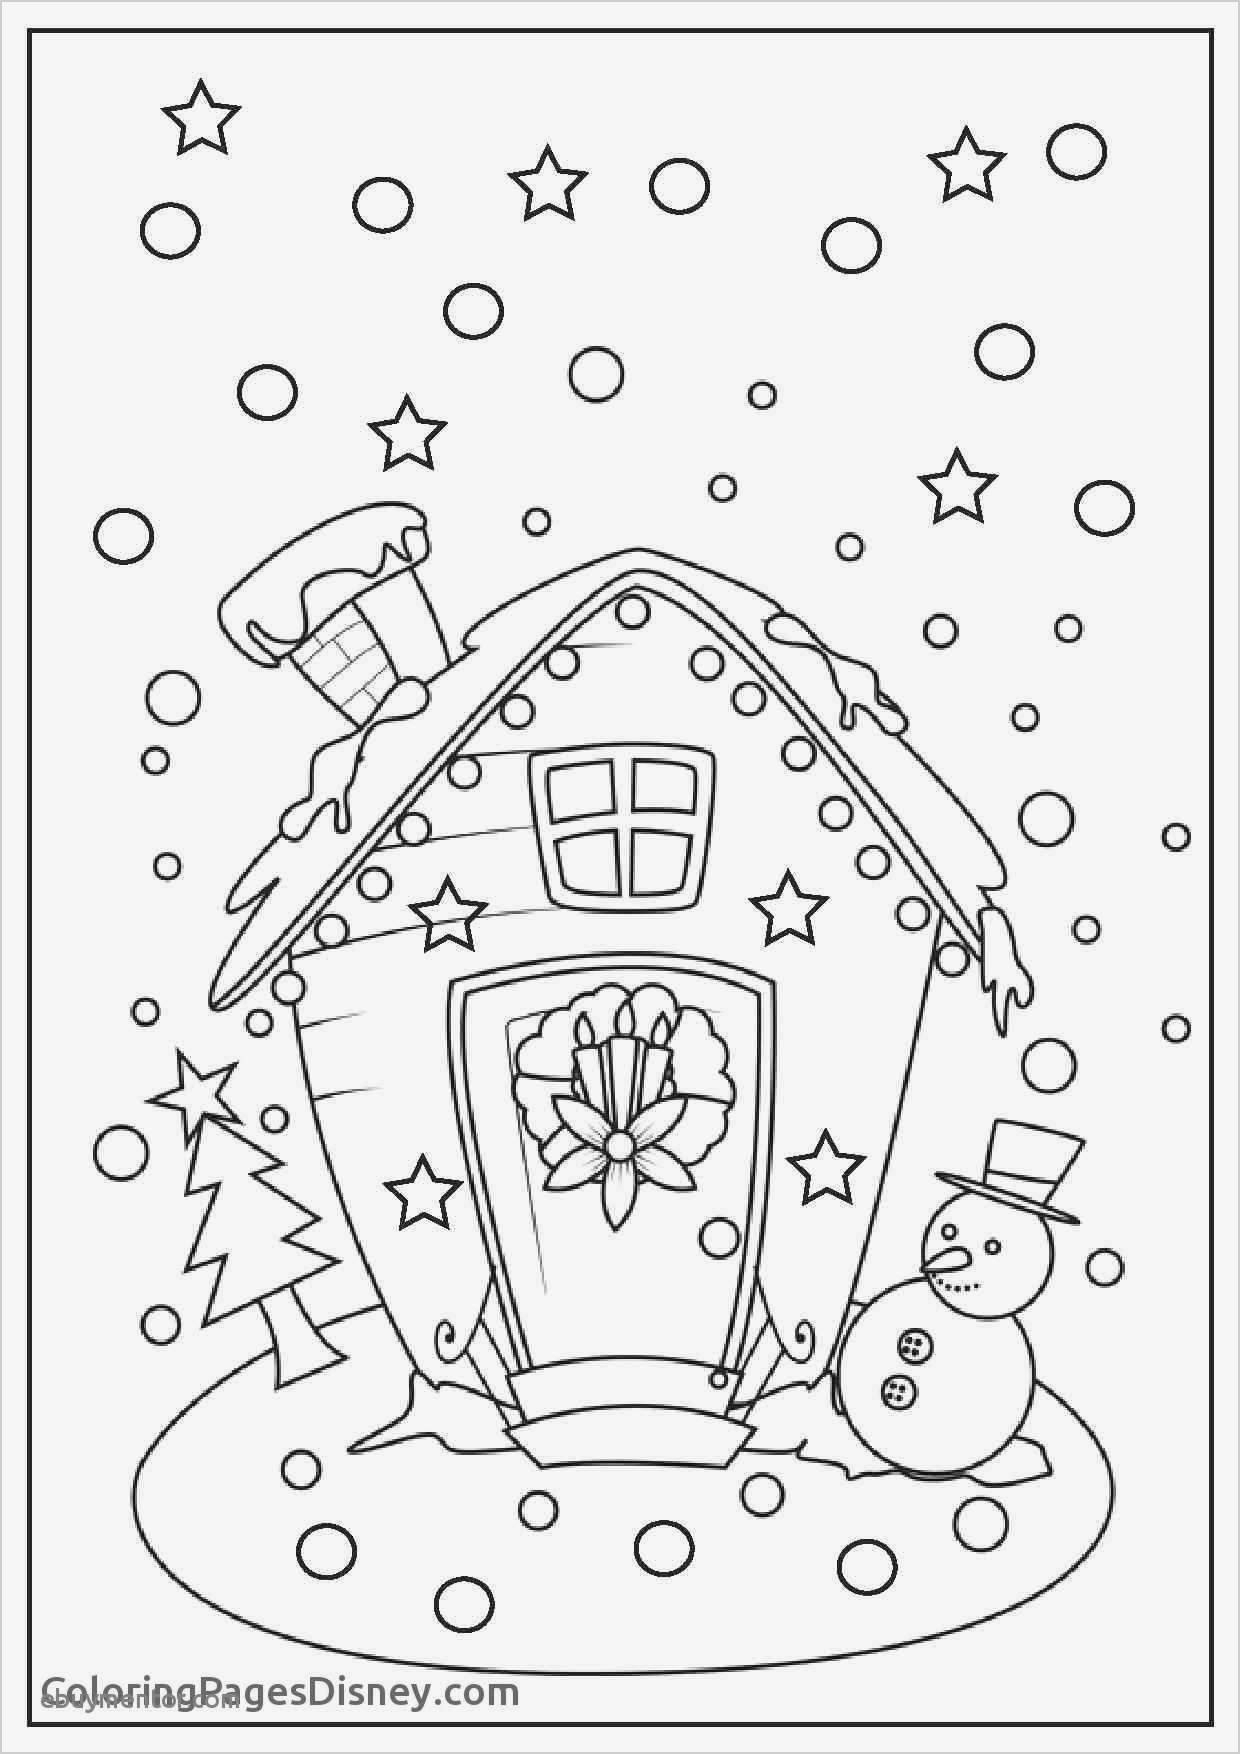 Merry Christmas Coloring Pages Free Xmas Coloring Pages Printable - Xmas Coloring Pages Free Printable